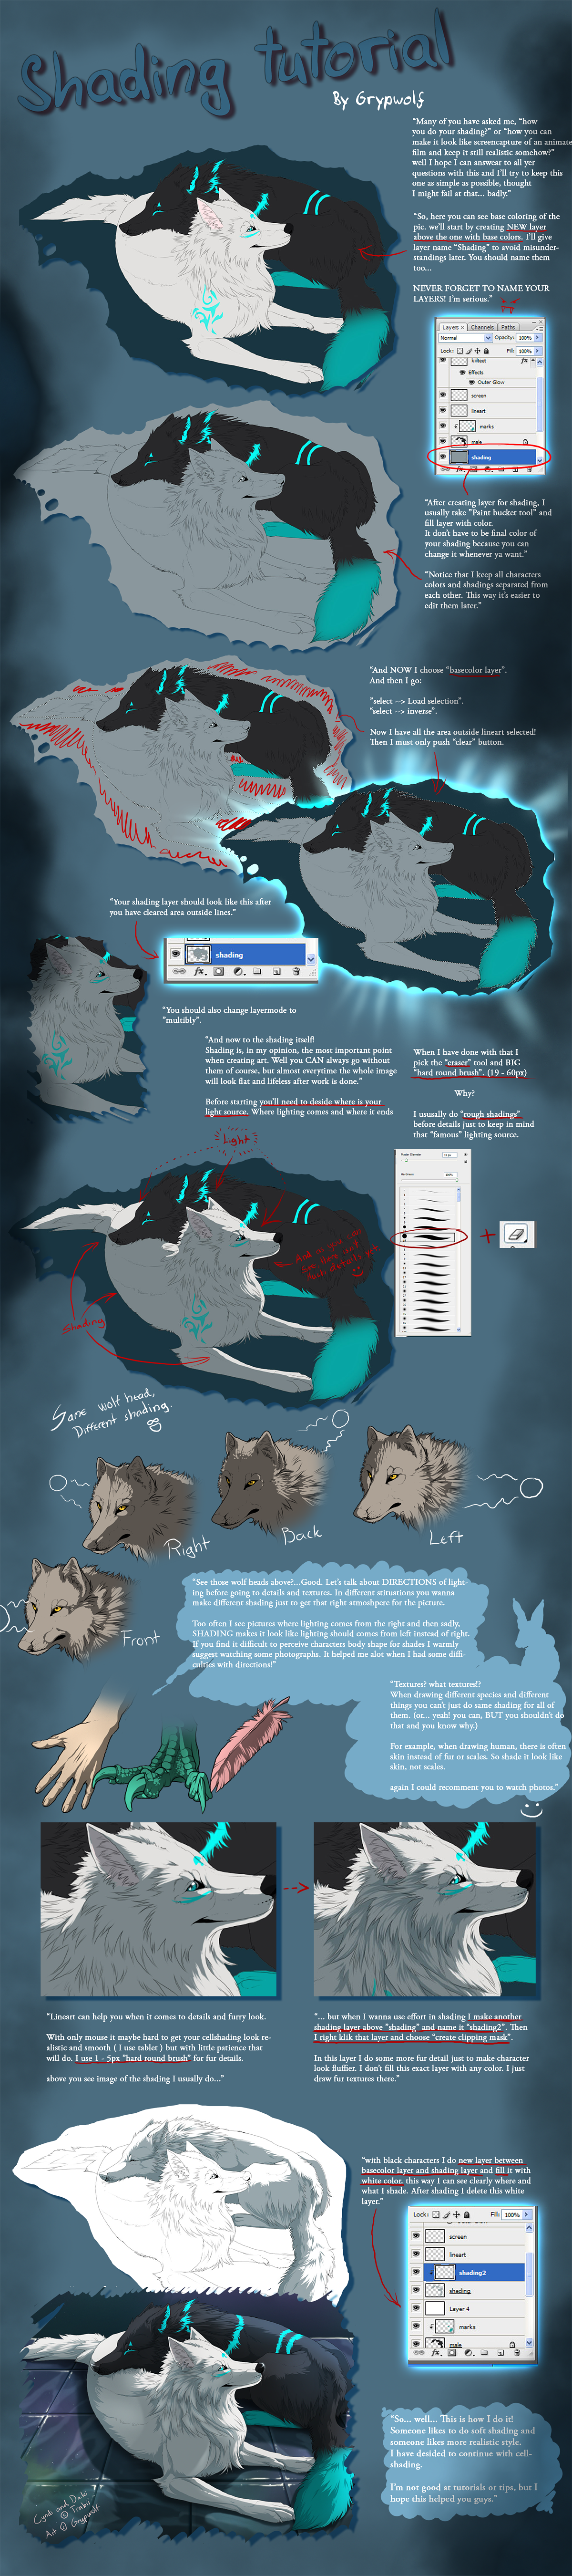 Shading Tutorial By Grypwolf Shading Tutorial By Grypwolf